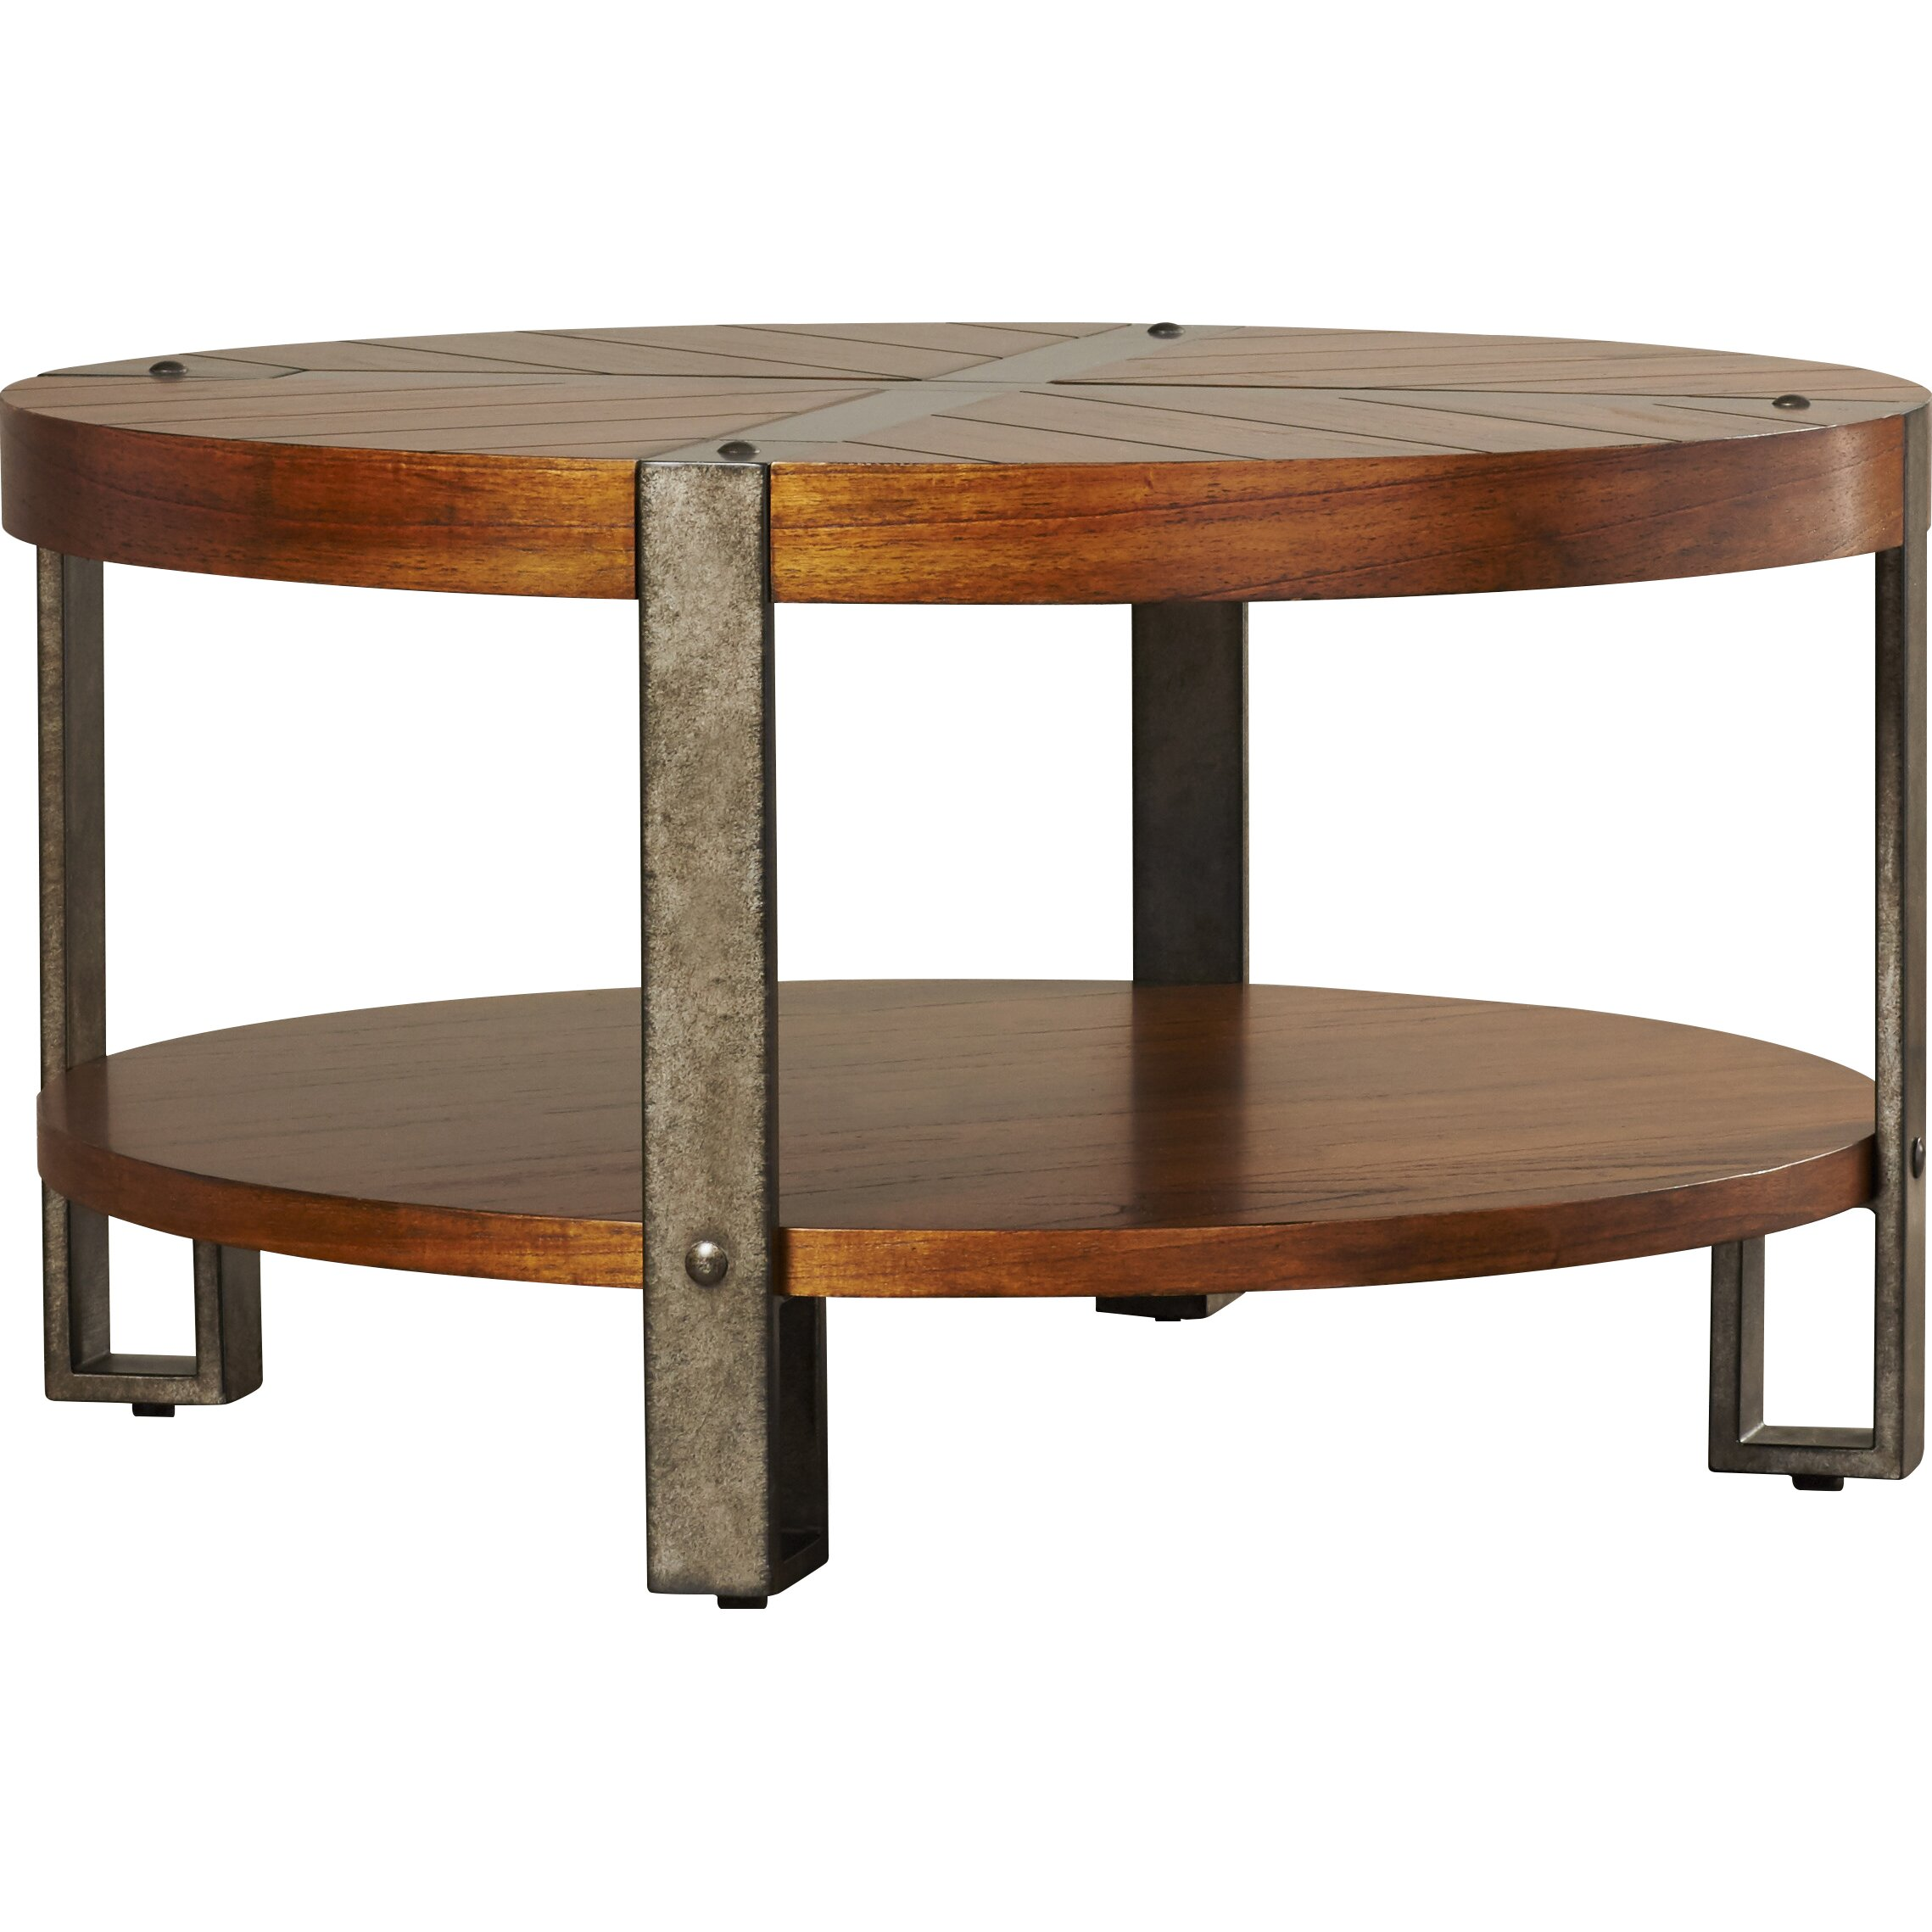 Loon Peak Gallatin Round Coffee Table & Reviews